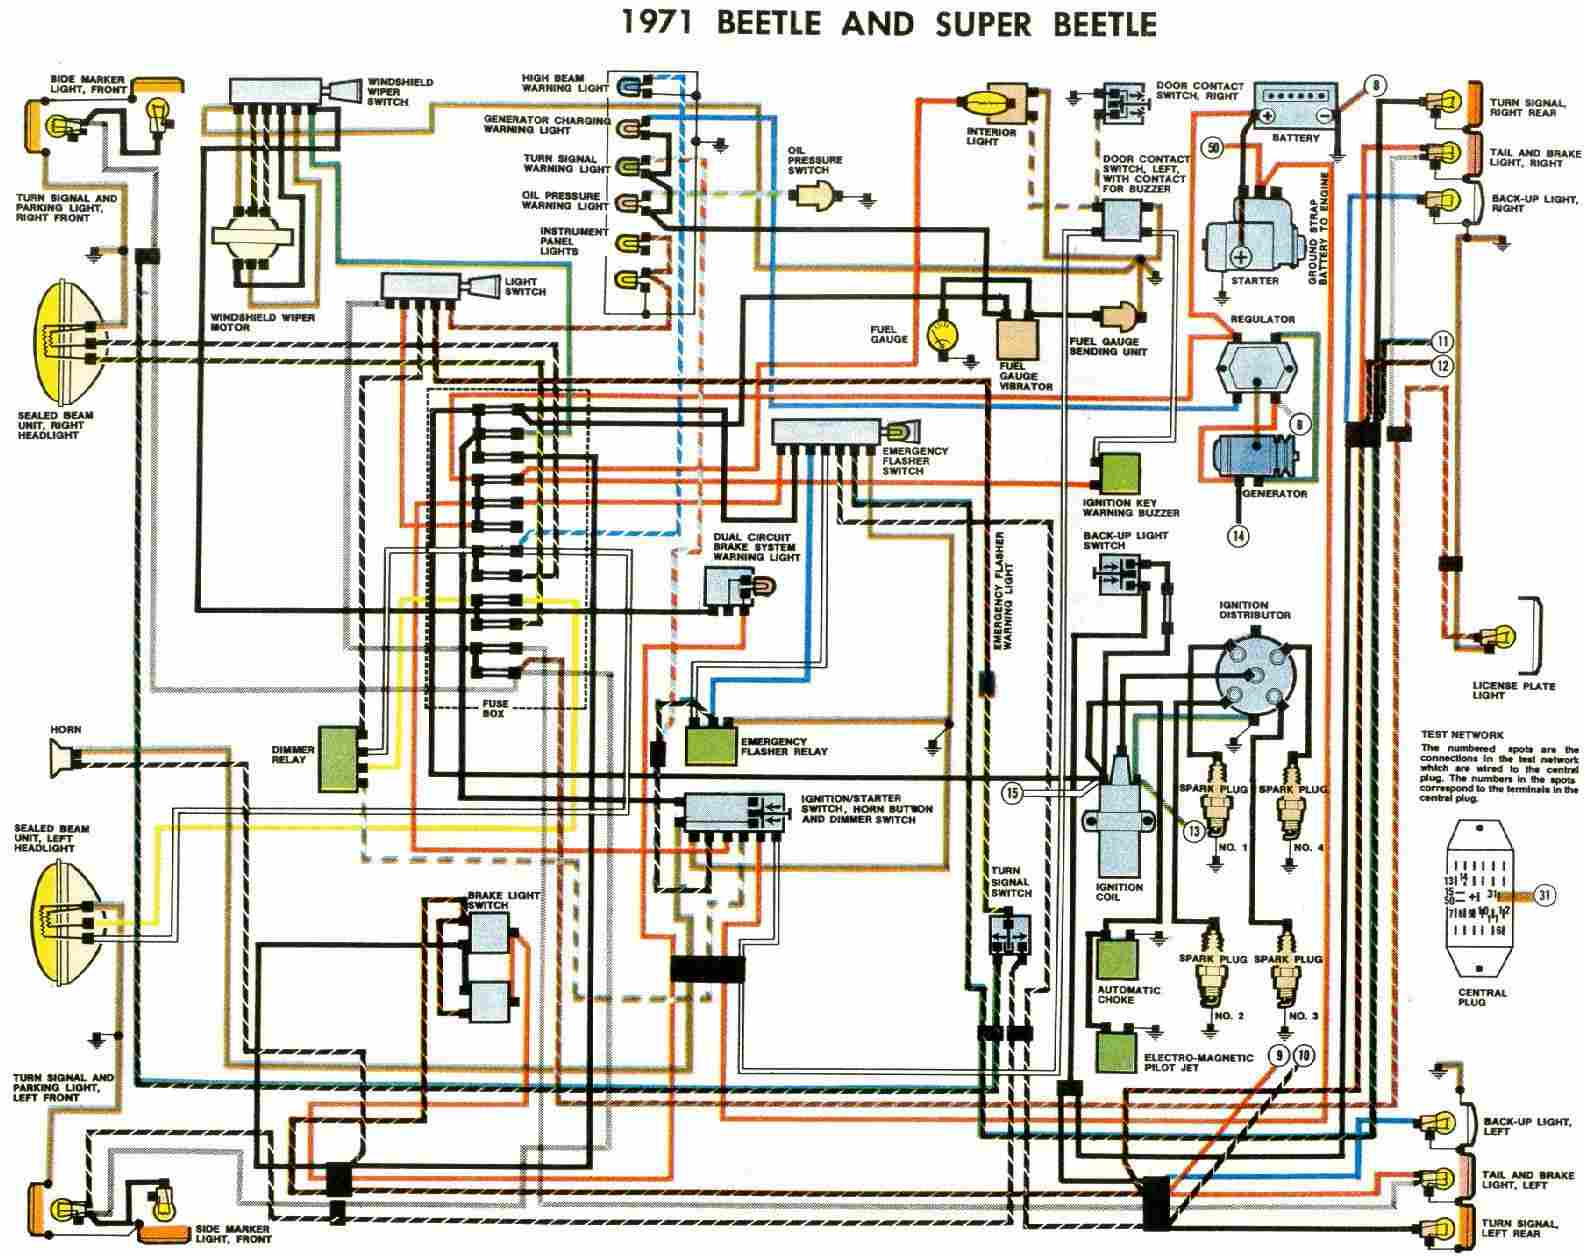 VW+Beetle+and+Super+Beetle+1971+Electrical+Wiring+Diagram fordmanuals 1971 colorized mustang wiring diagrams (ebook Wiring Harness Diagram at creativeand.co